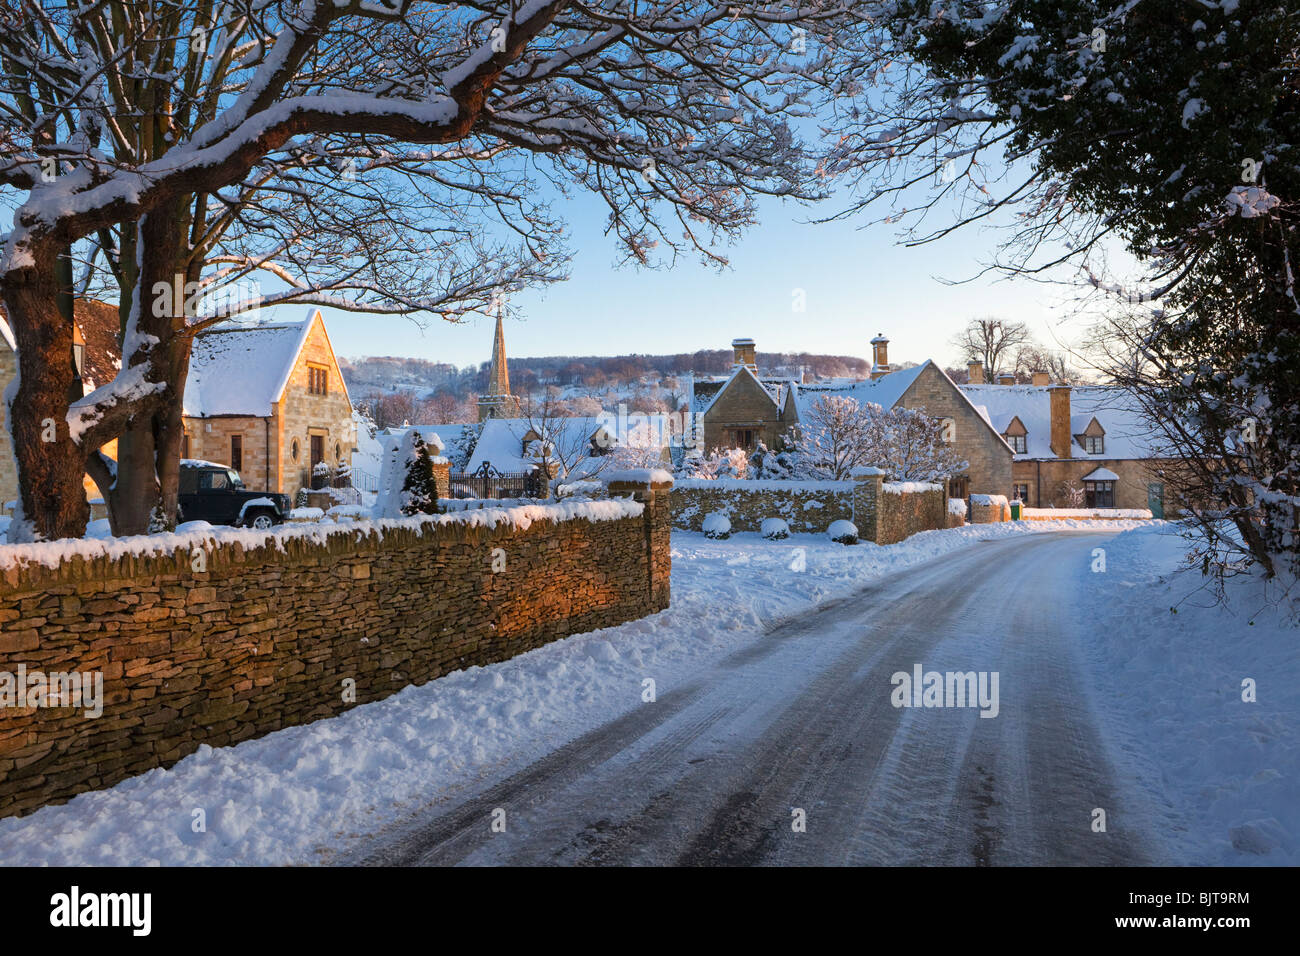 Christmas Wallpaper Snow Falling Dusk Falling On Winter Snow In The Cotswold Village Of